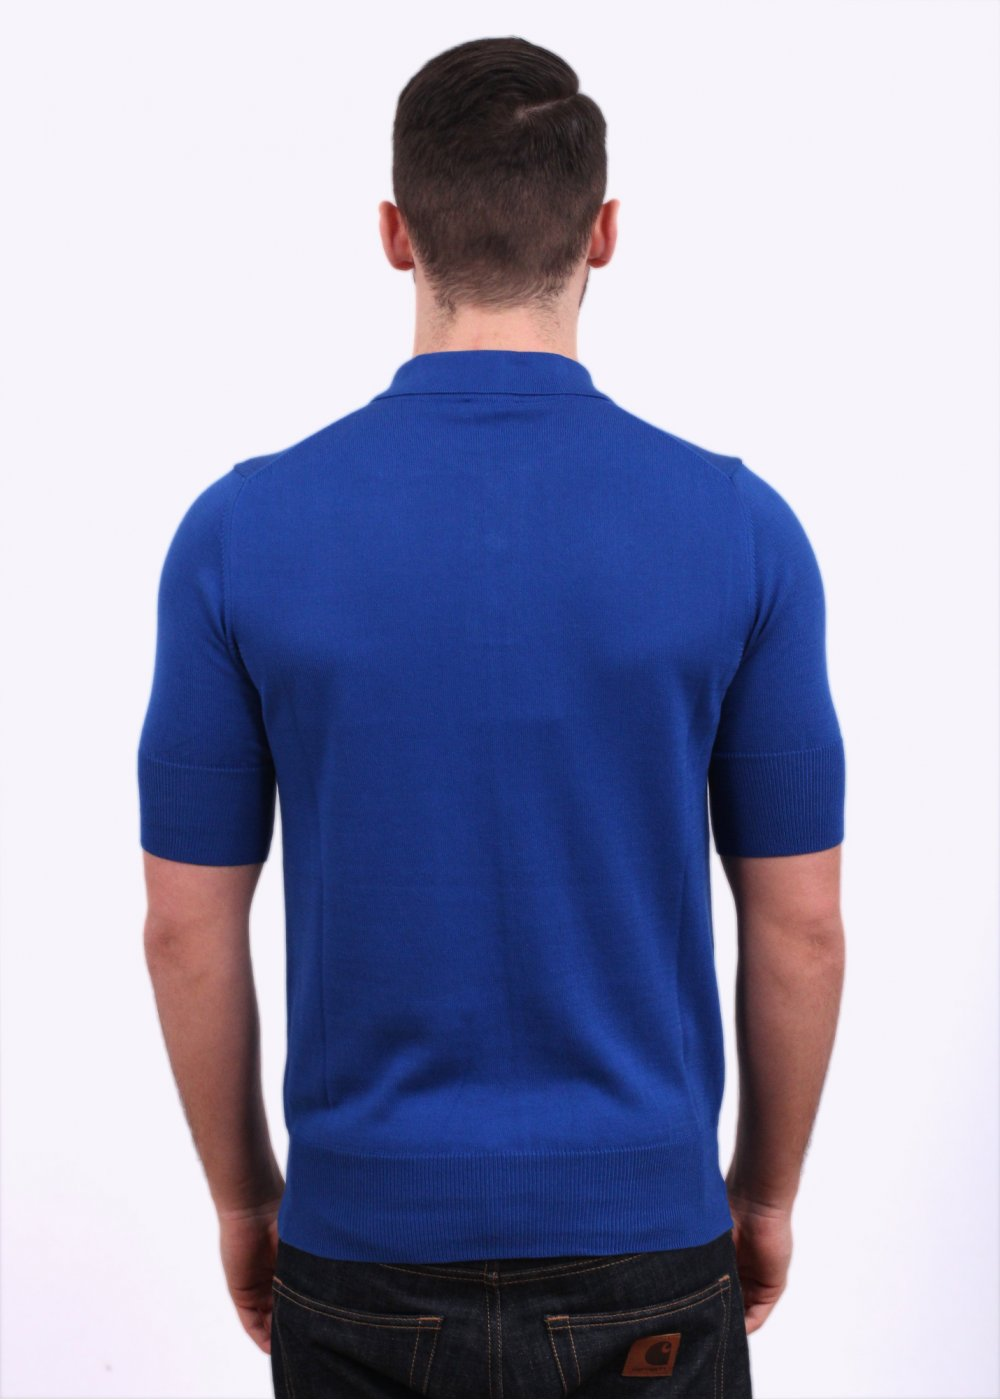 Vivienne Westwood Cuff Sleeve Polo Shirt Royal Blue